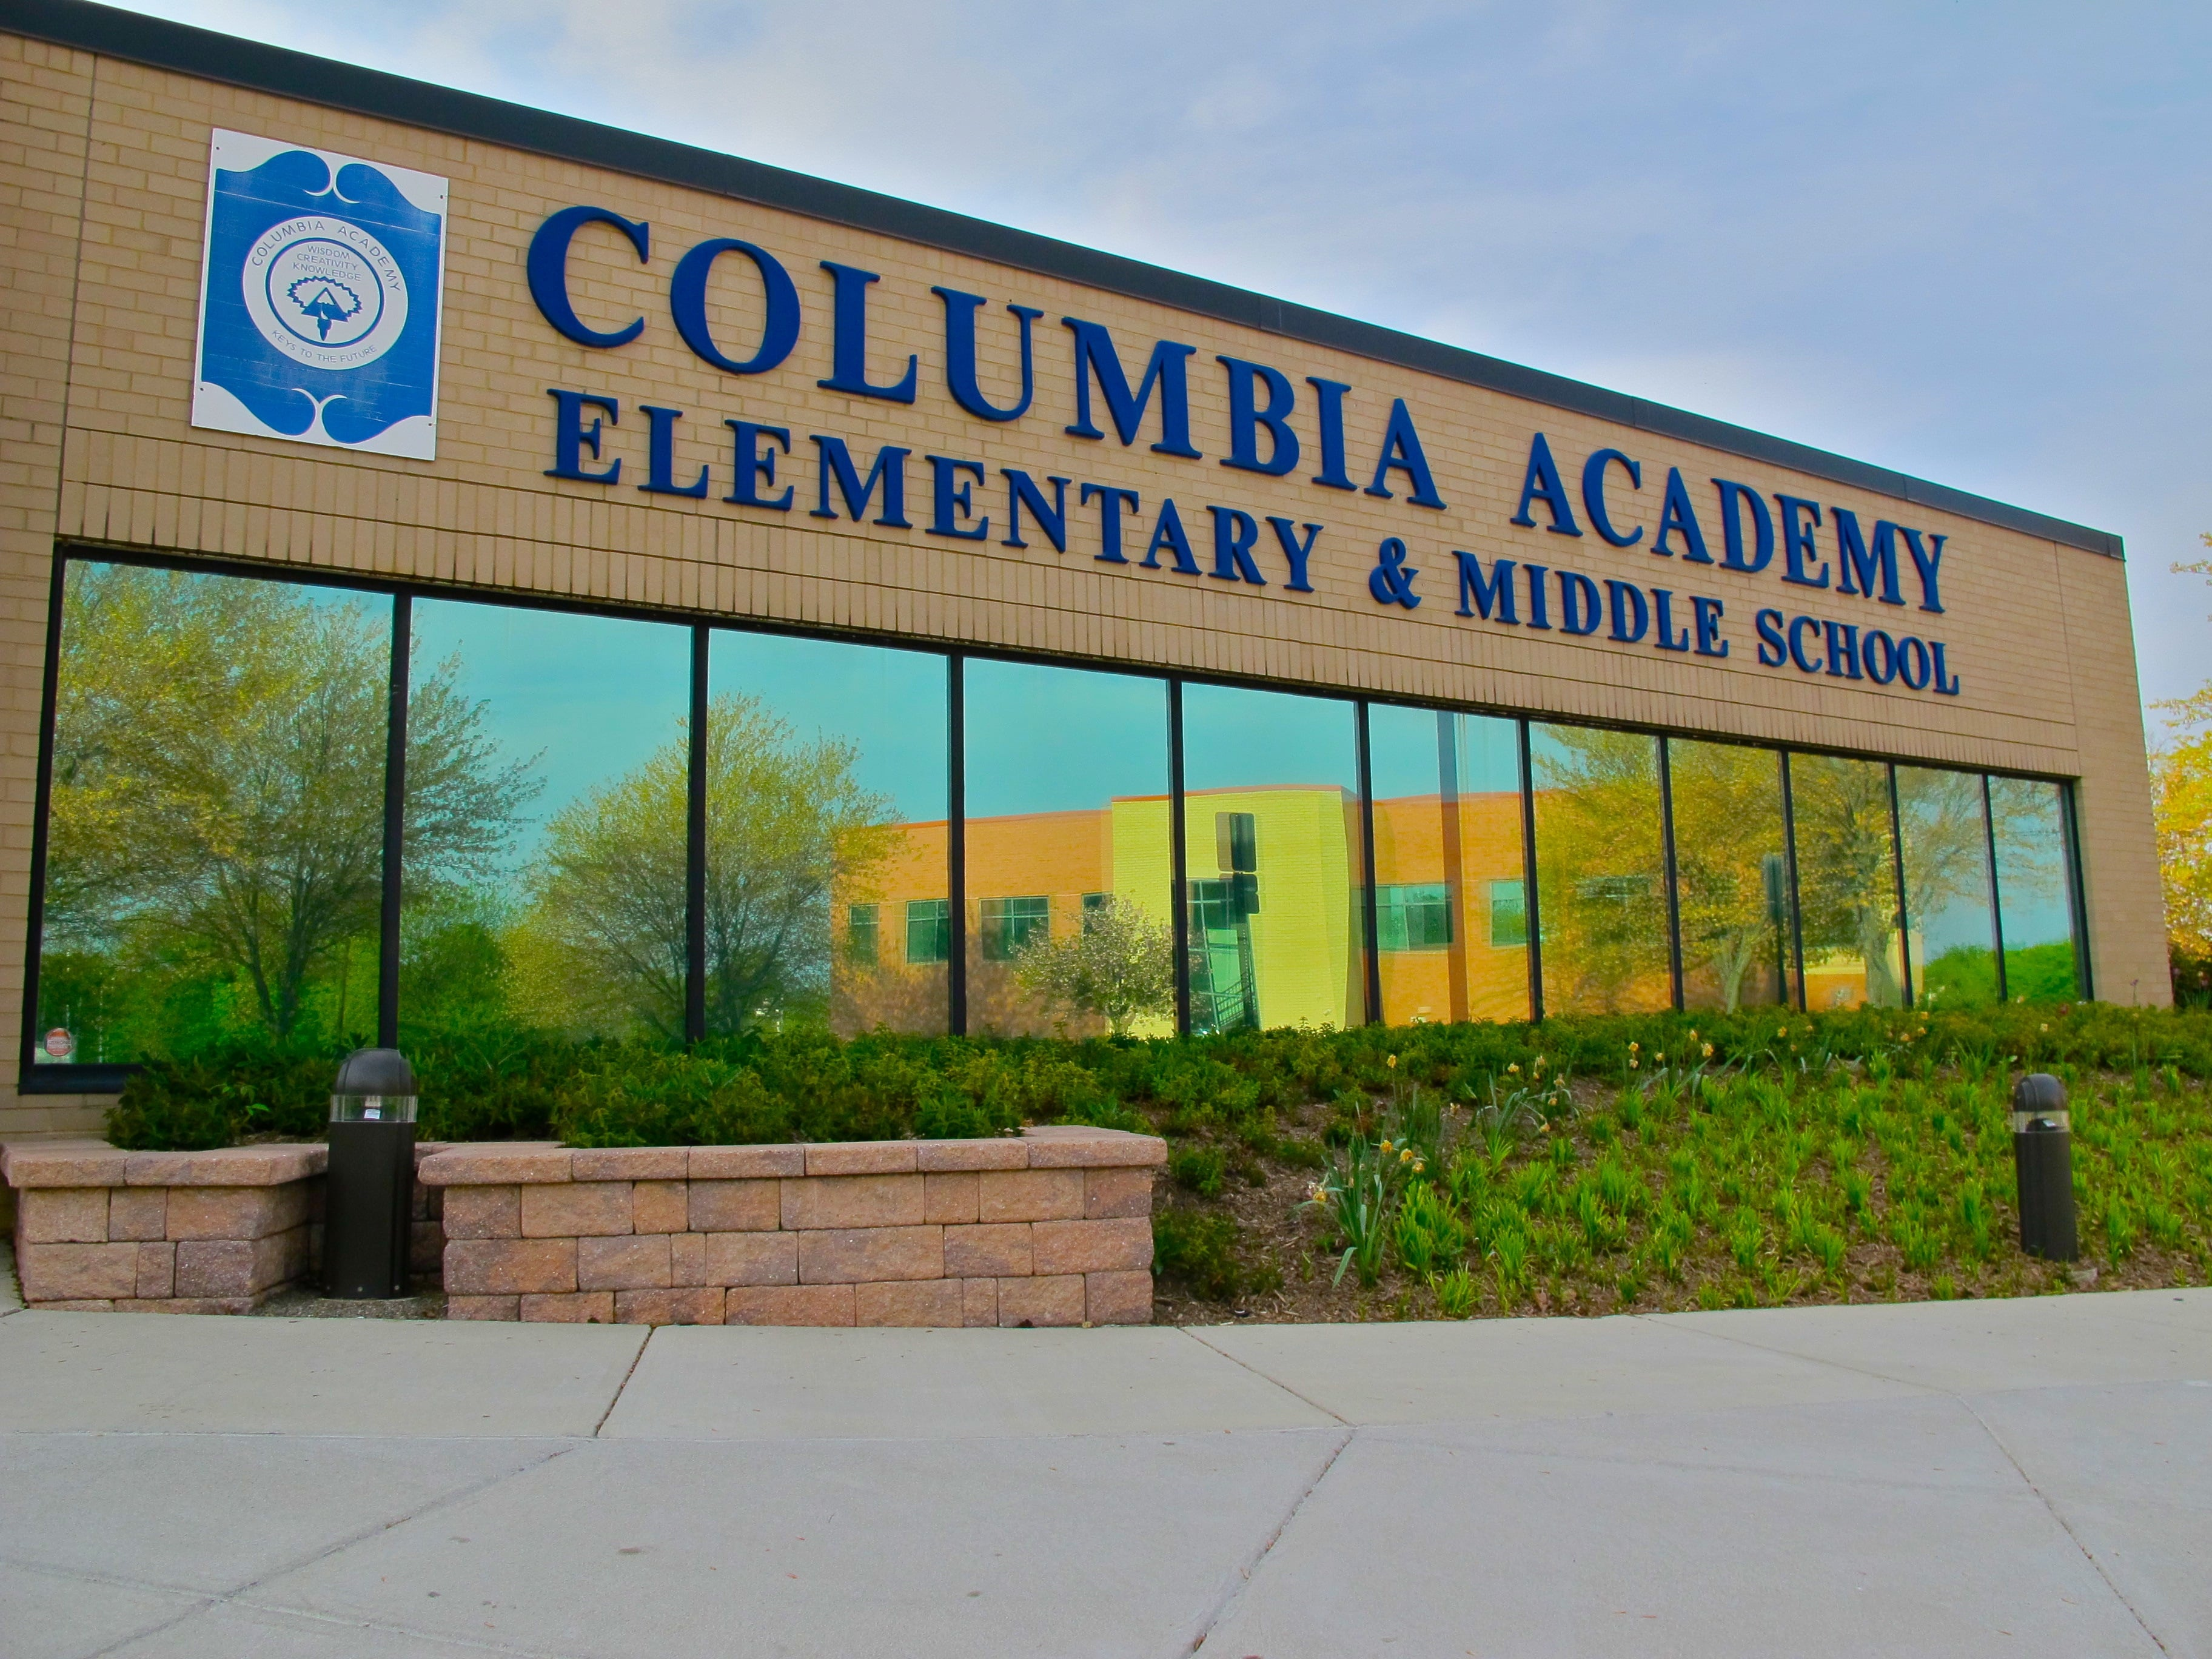 elementary school and middle school Glenmar elementary school's mission is to equip students with the knowledge, skills, and beliefs needed to become college, career and workforce ready.